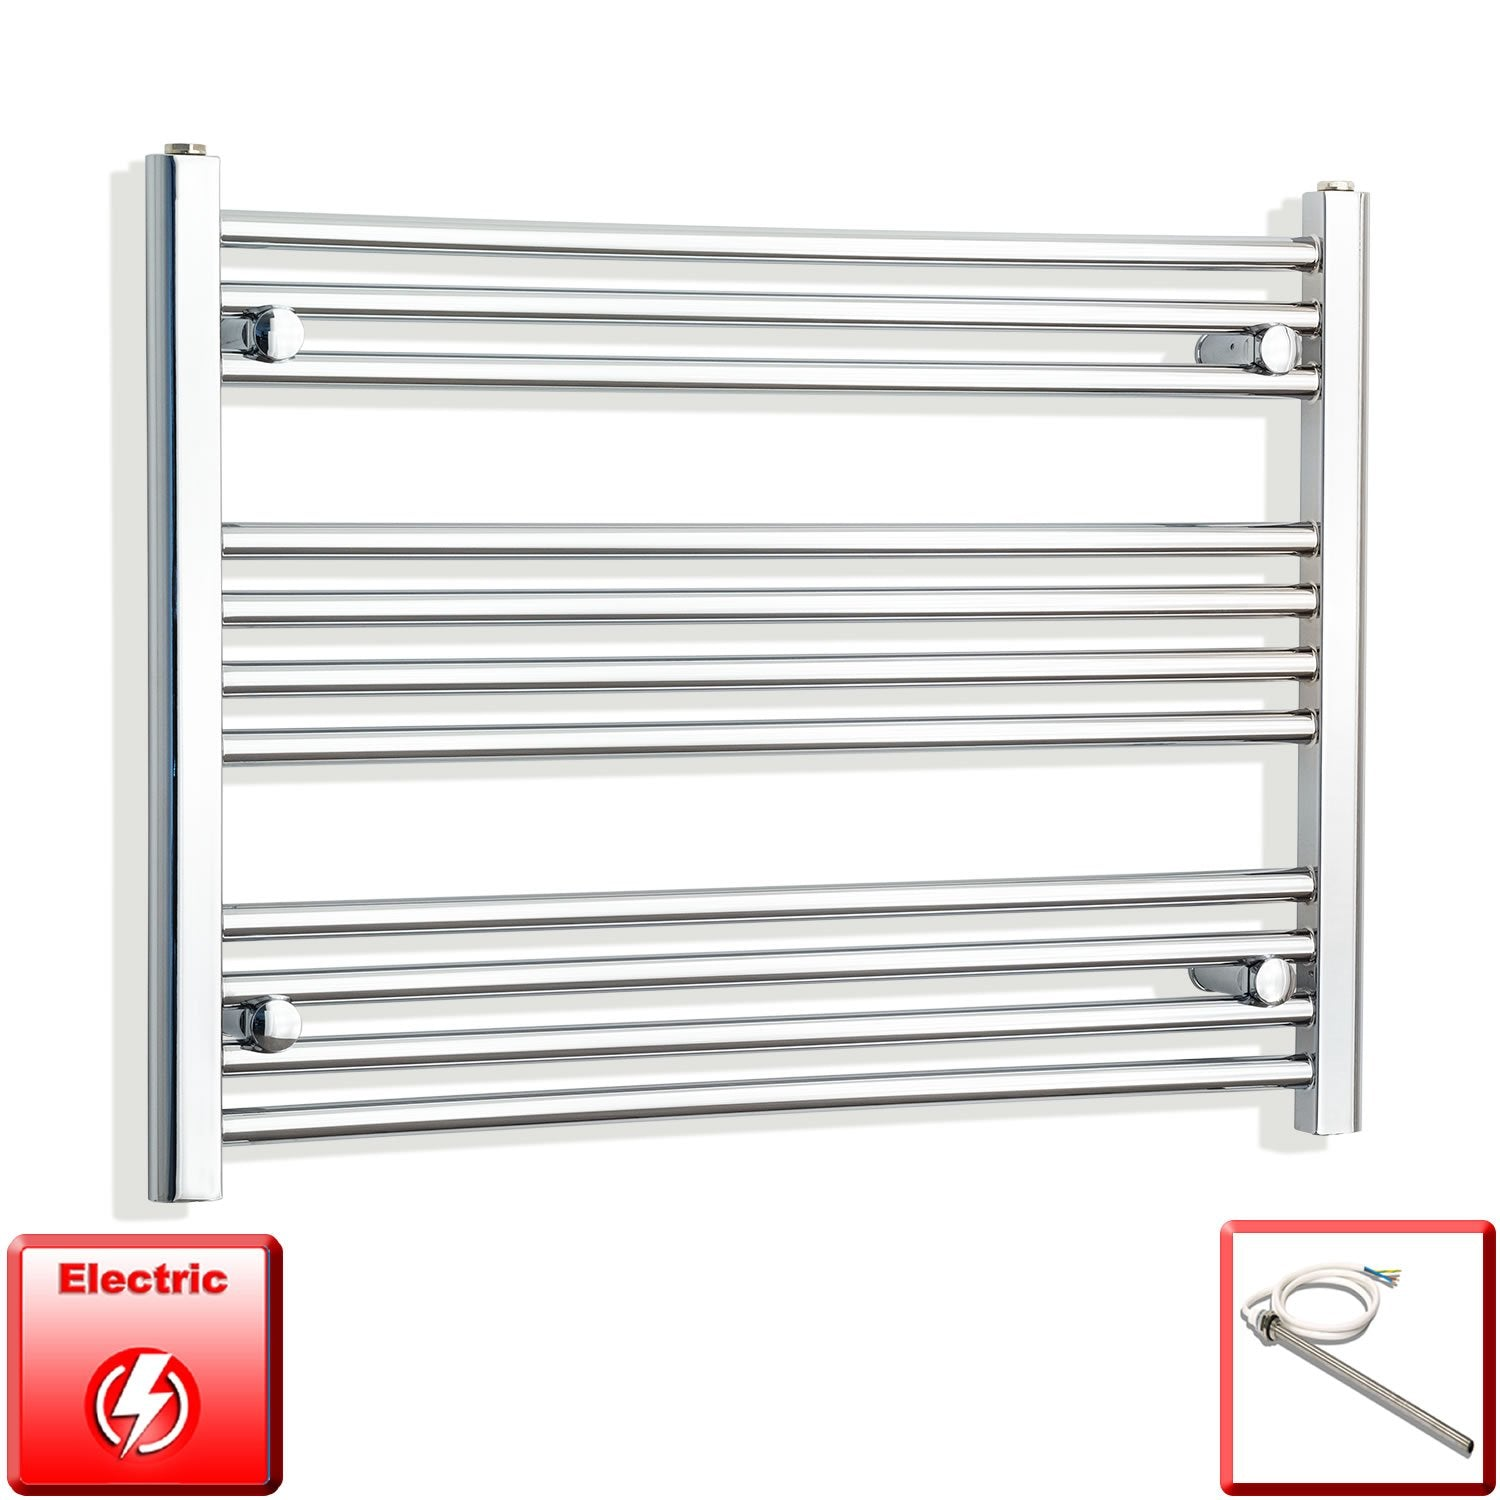 950mm Wide 600mm High Flat Chrome Pre-Filled Electric Heated Towel Rail Radiator HTR,Single Heat Element